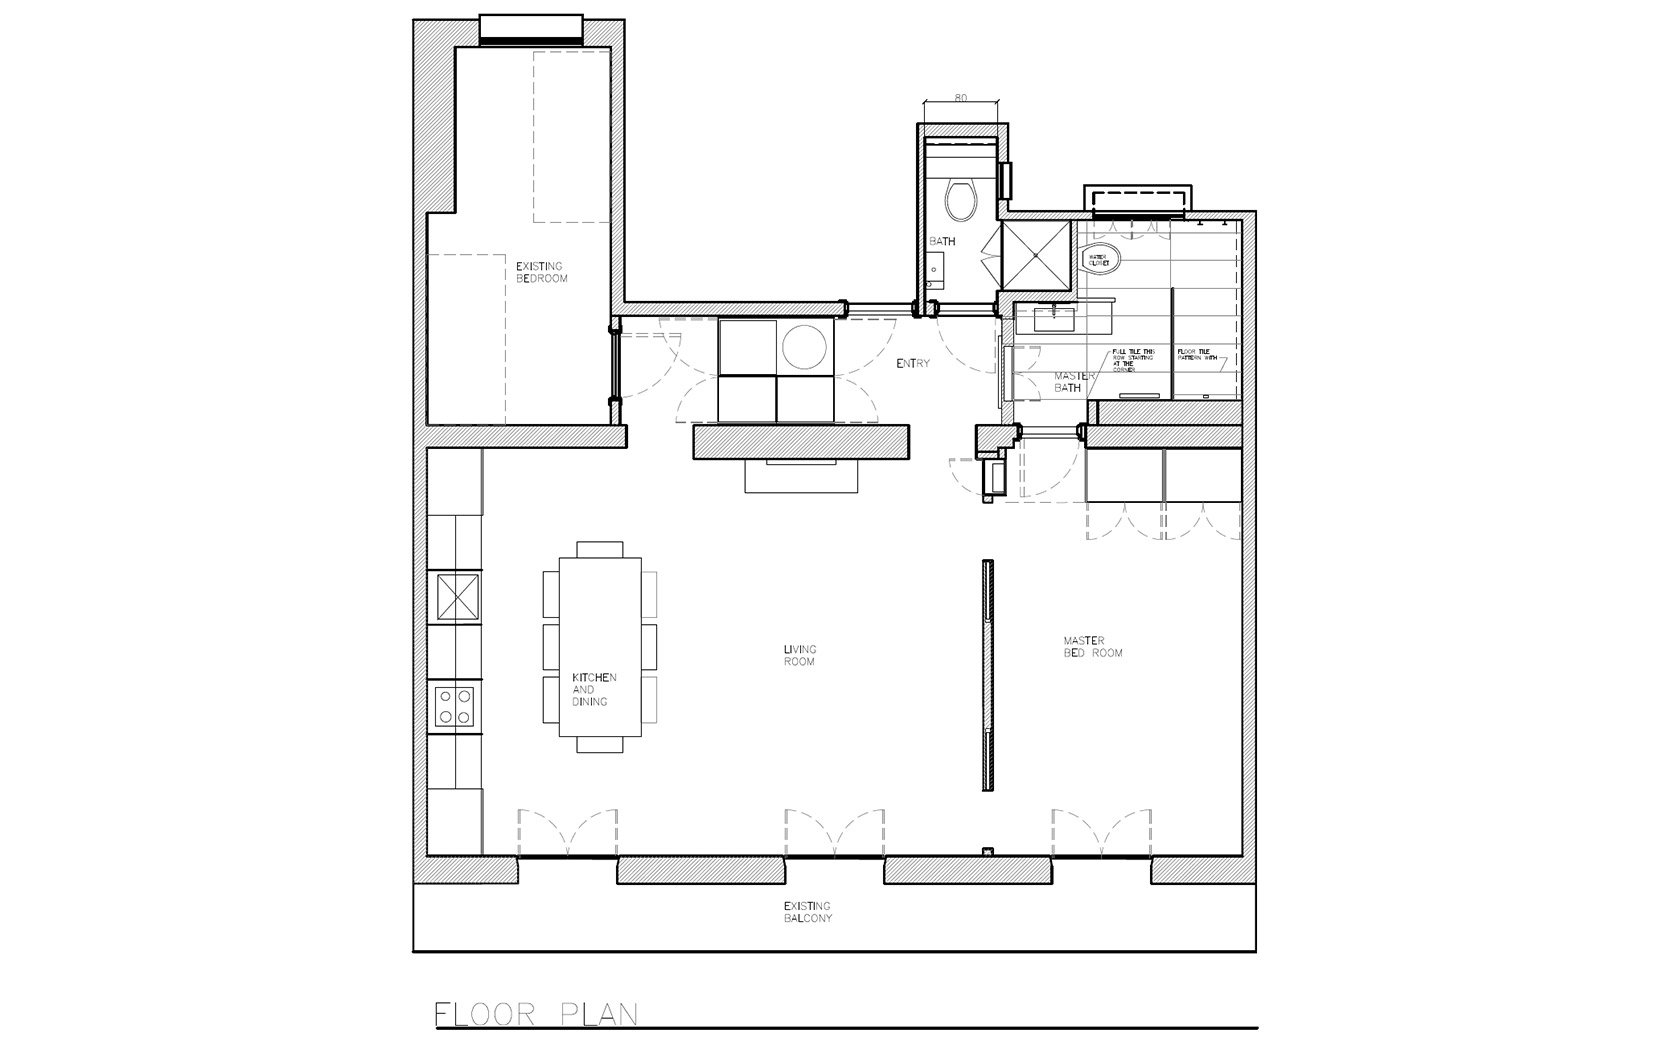 New-Merlot-floor-plan